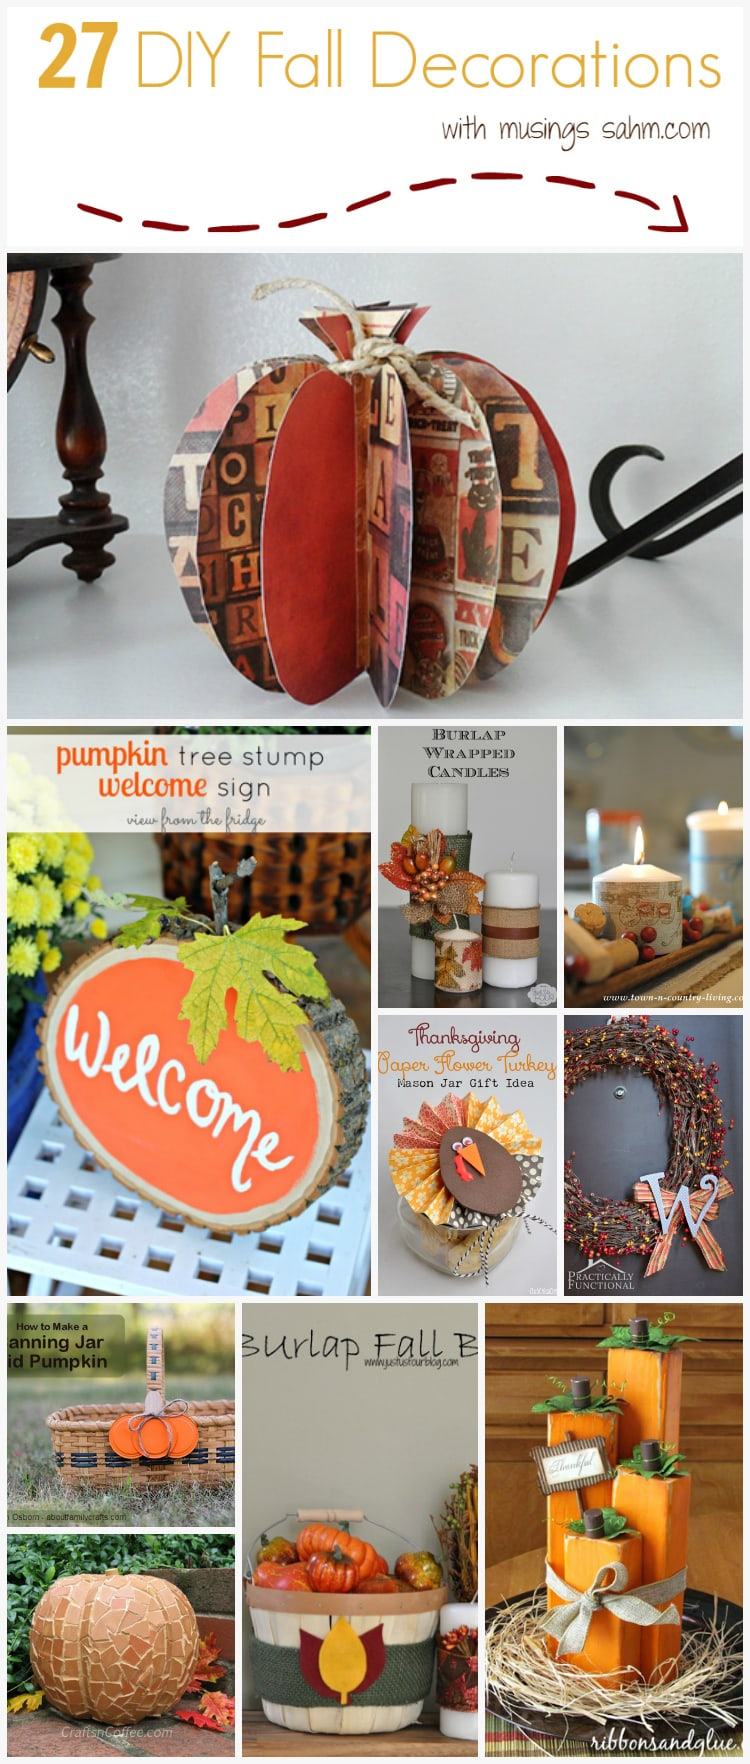 27 diy fall decorations   living well mom